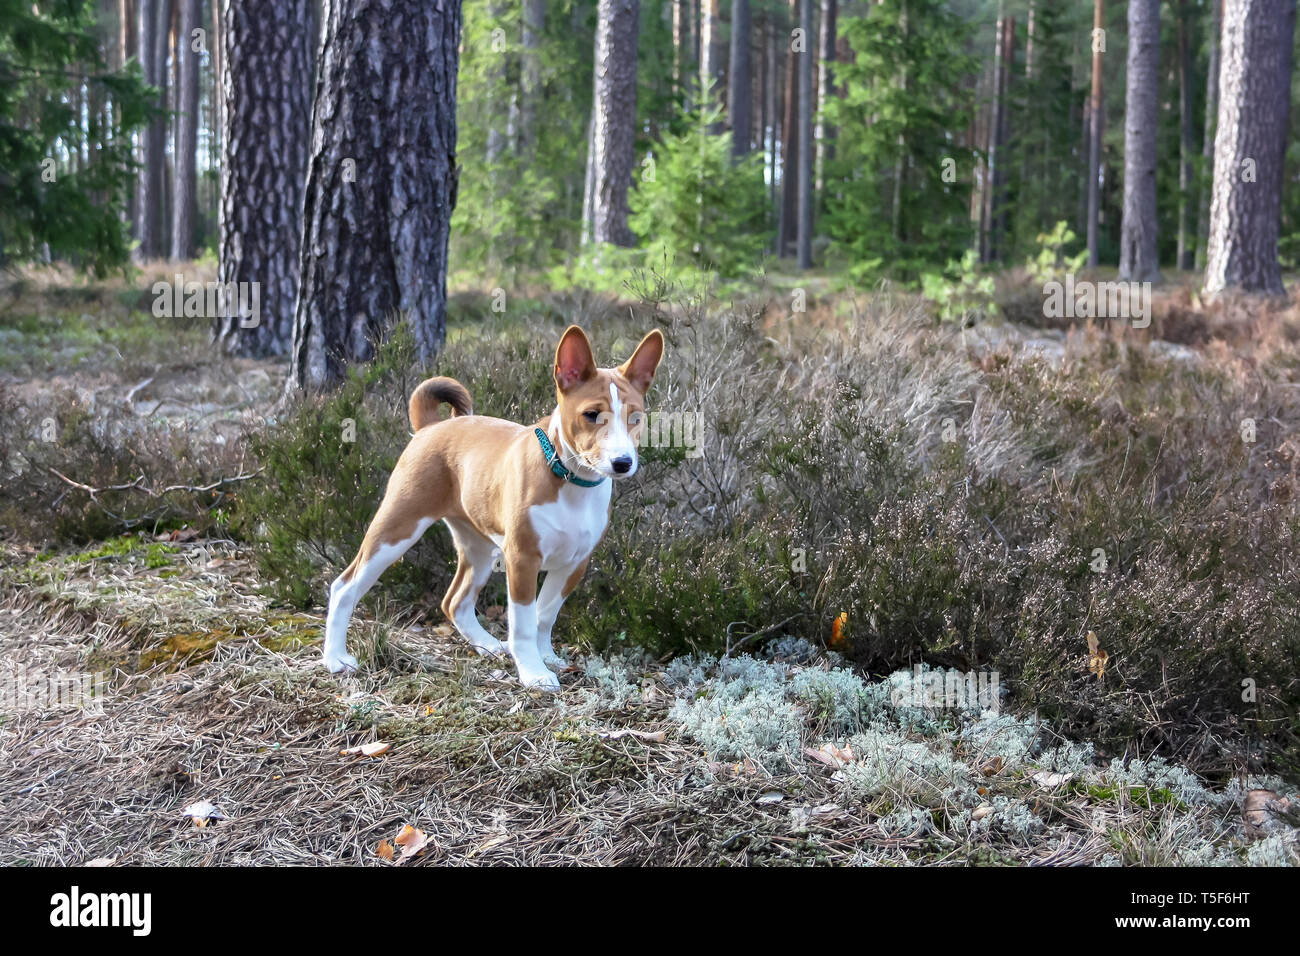 A dog of basenji breed with short hair of white and red color, standing outside with forest in the background on summer - Stock Image